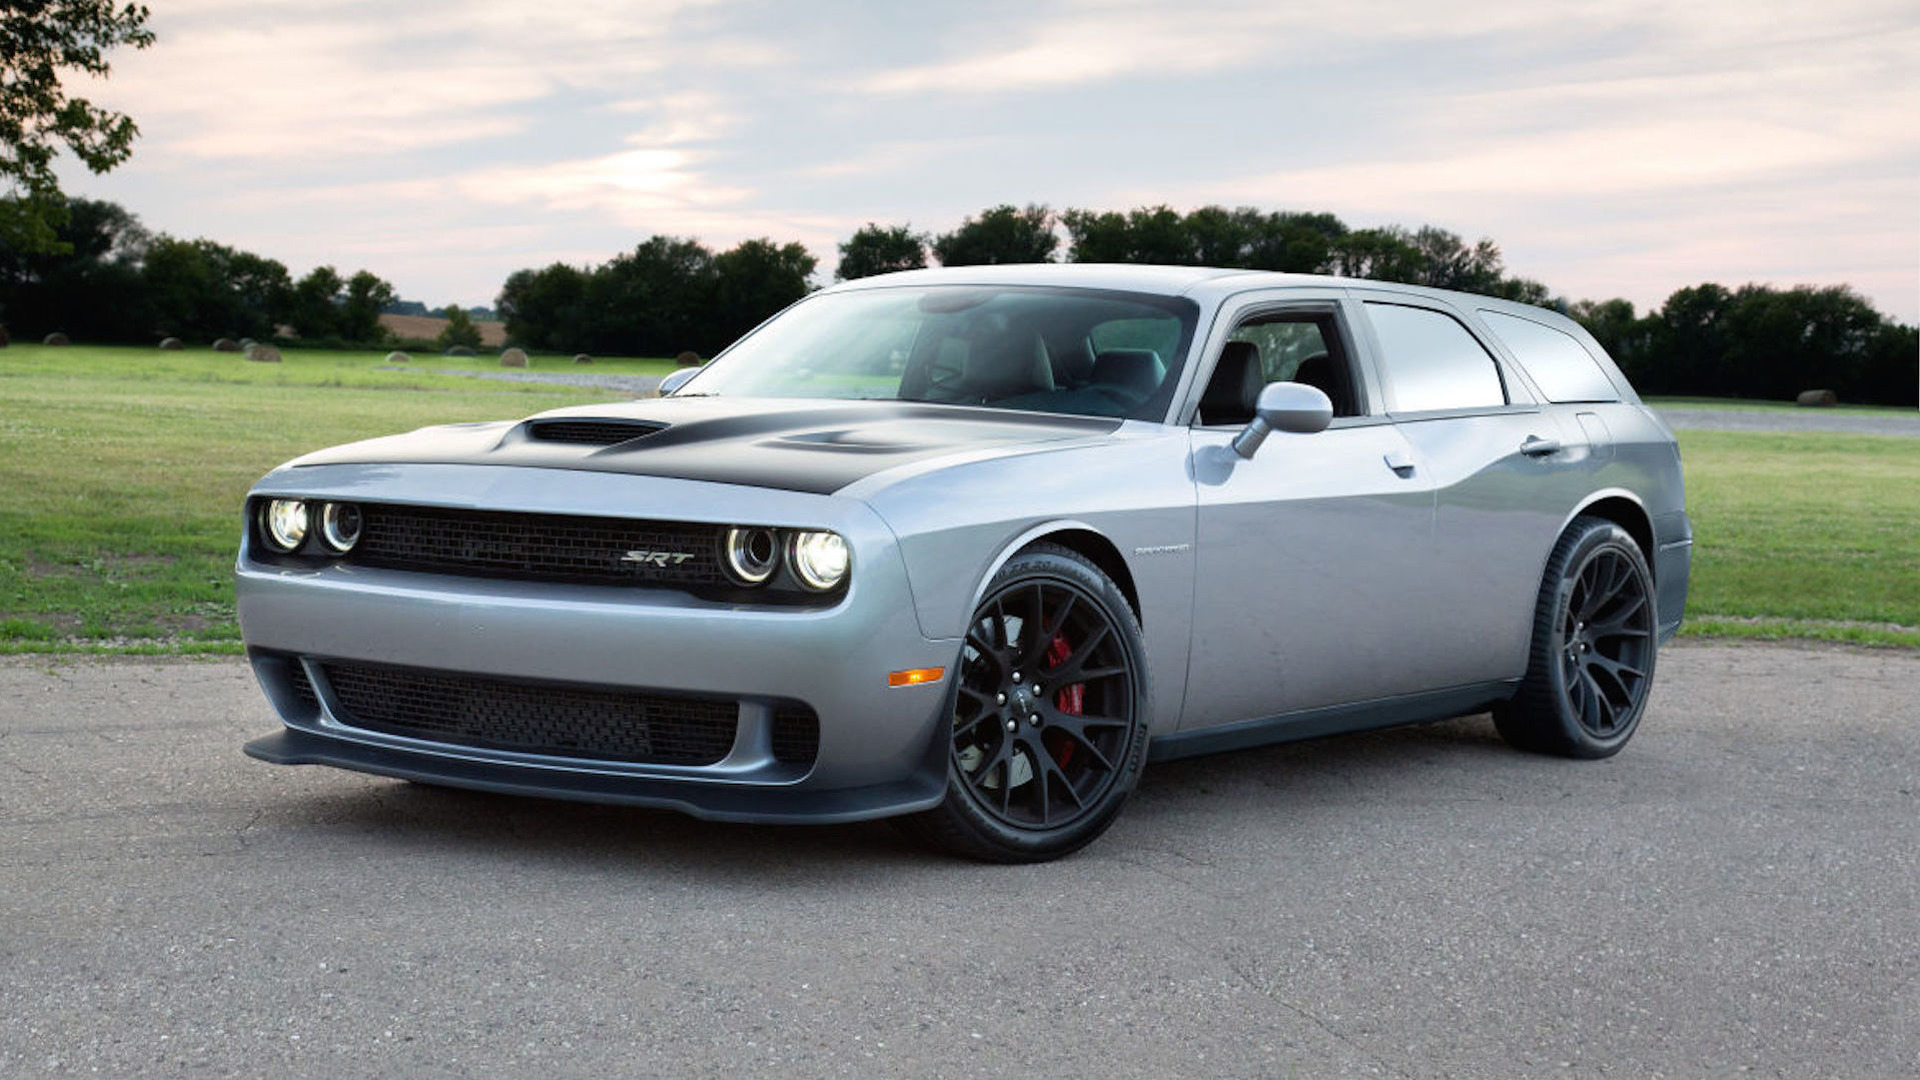 707 Hp Dodge Challenger Hellcat Wagon Is Beyond Cool Will It Happen